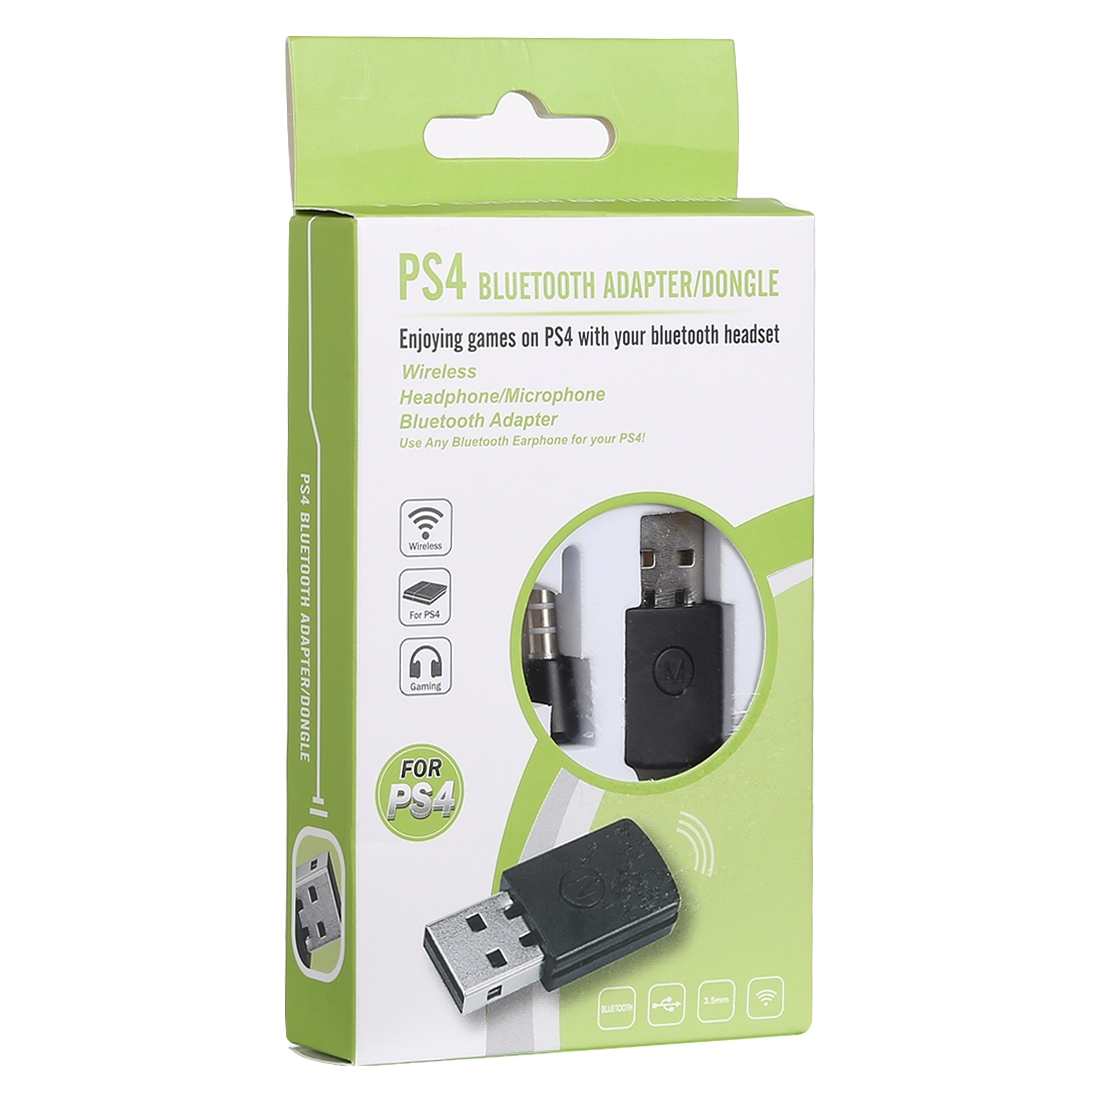 3 5mm Usb Bluetooth Adapter Dongle Receiver And Transmitters For Sony Playstation Ps4 Alexnld Com